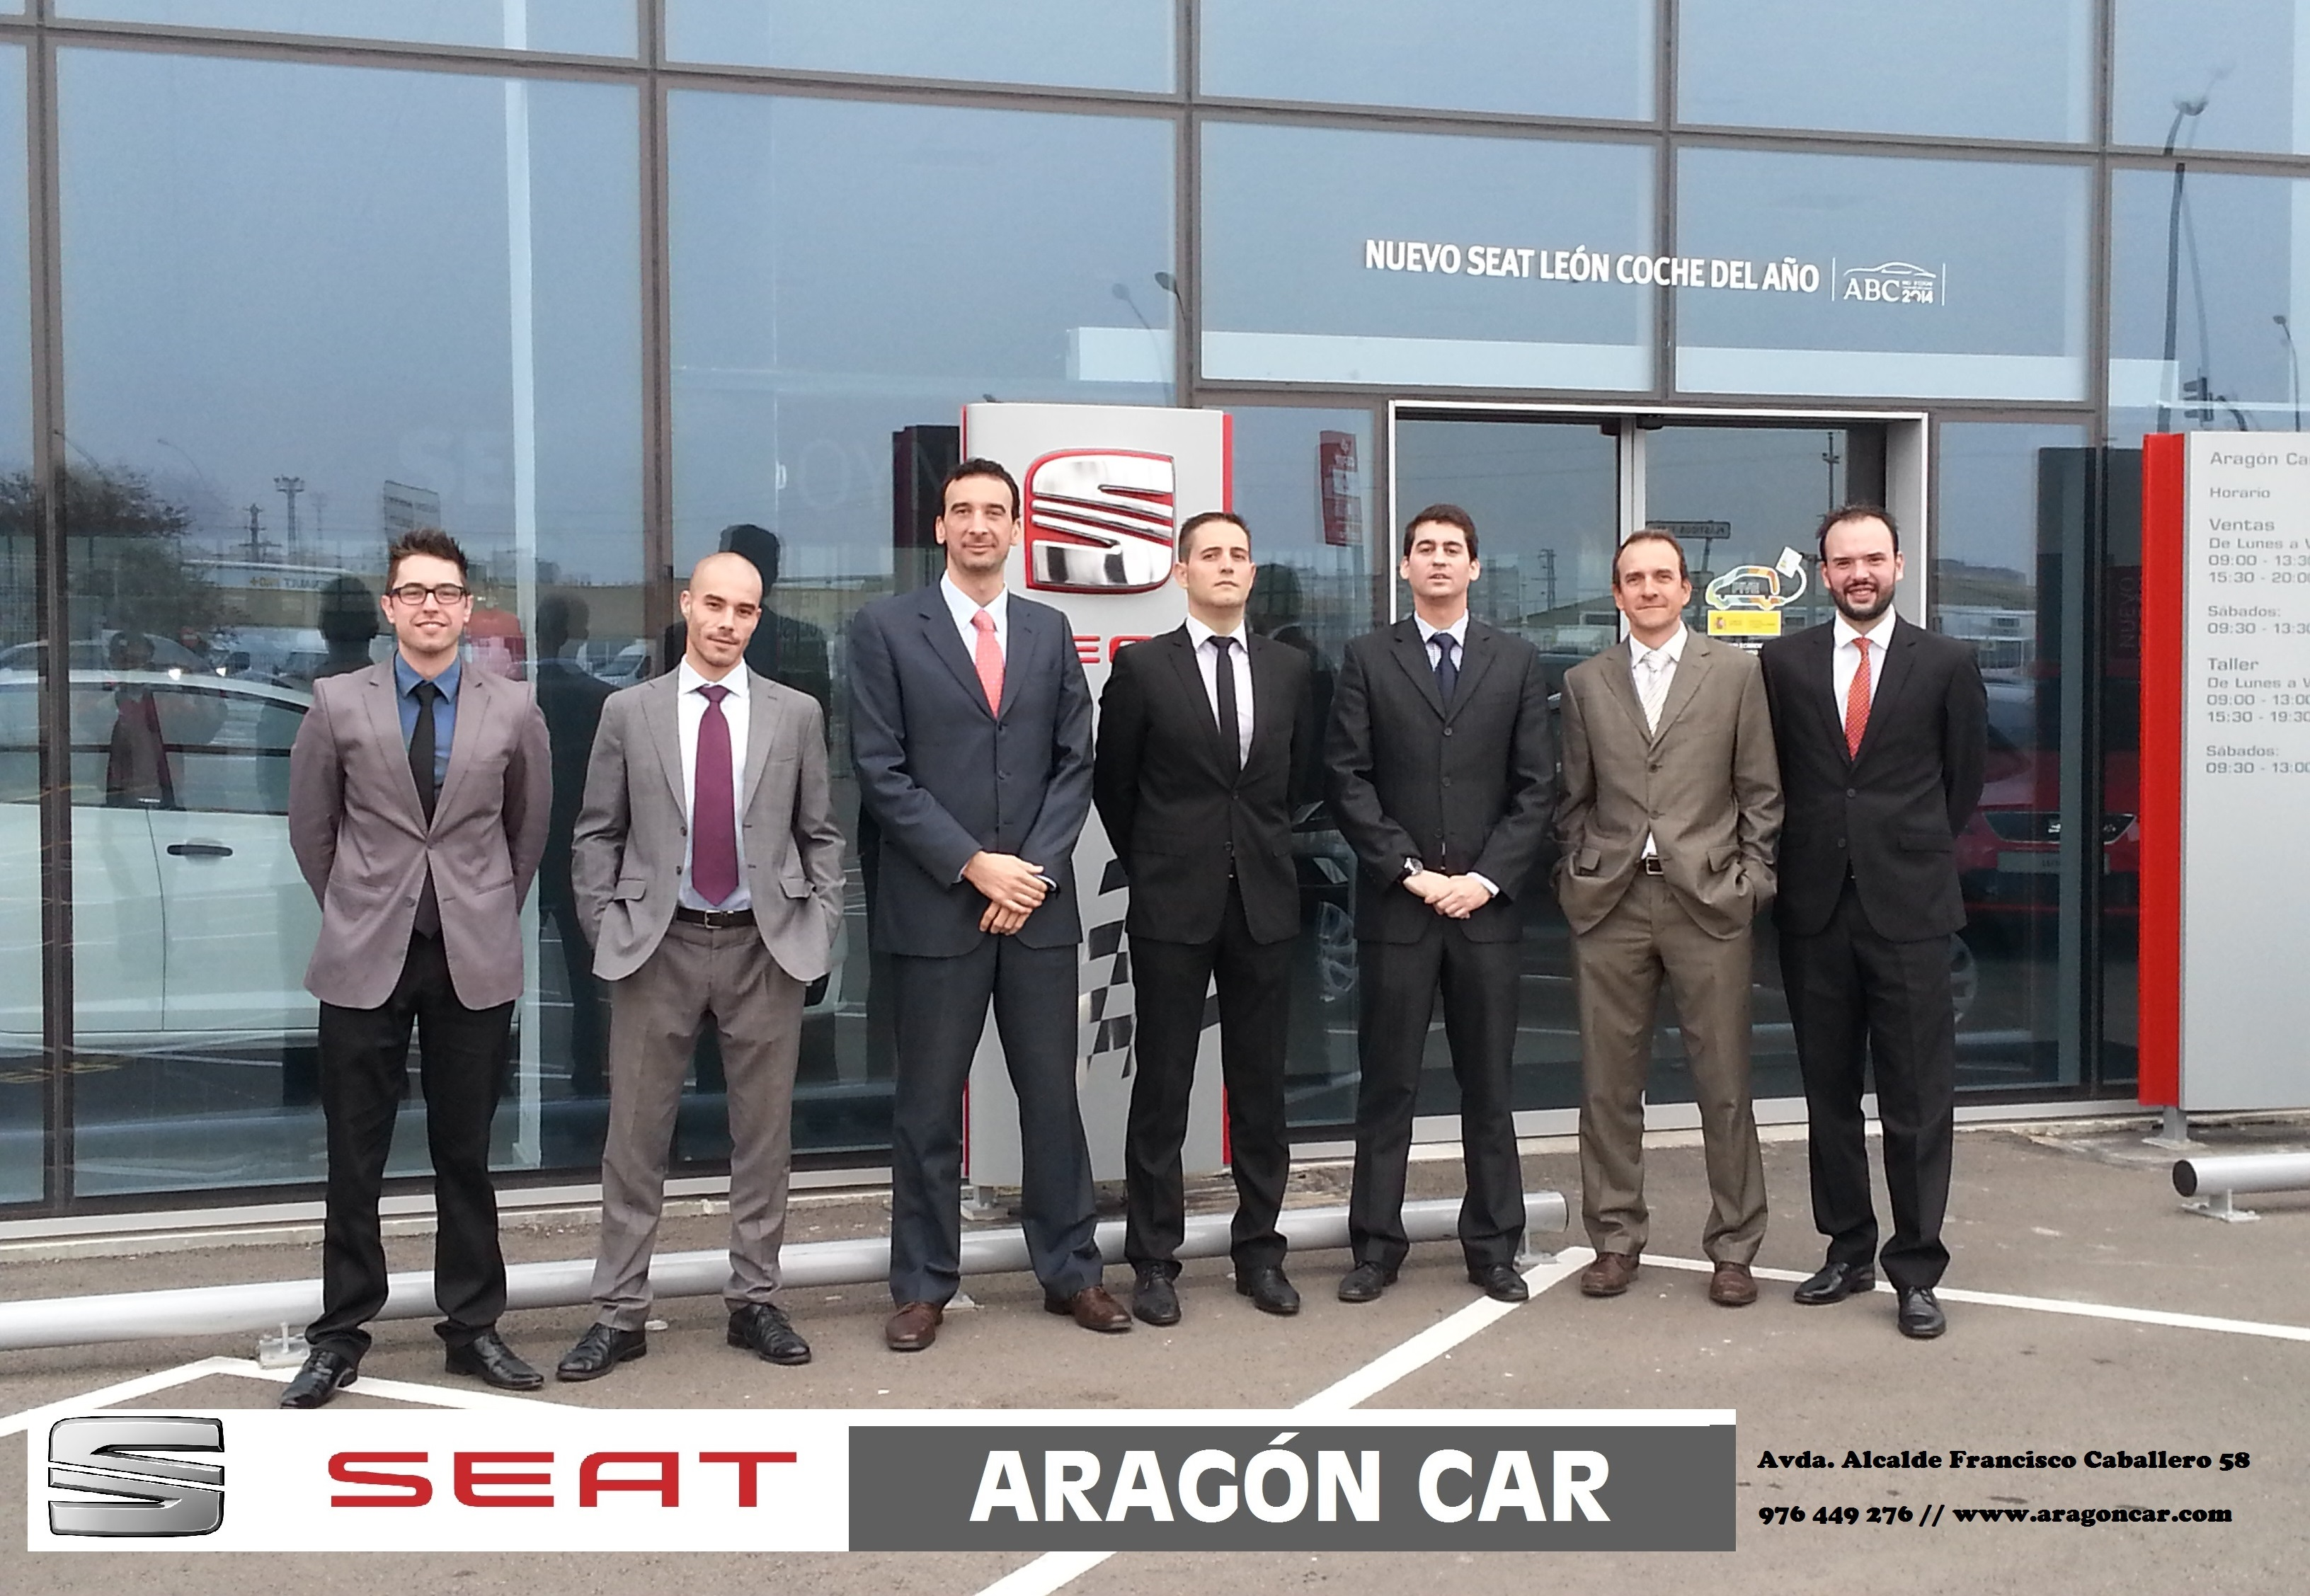 comercial aragon car zaragoza final